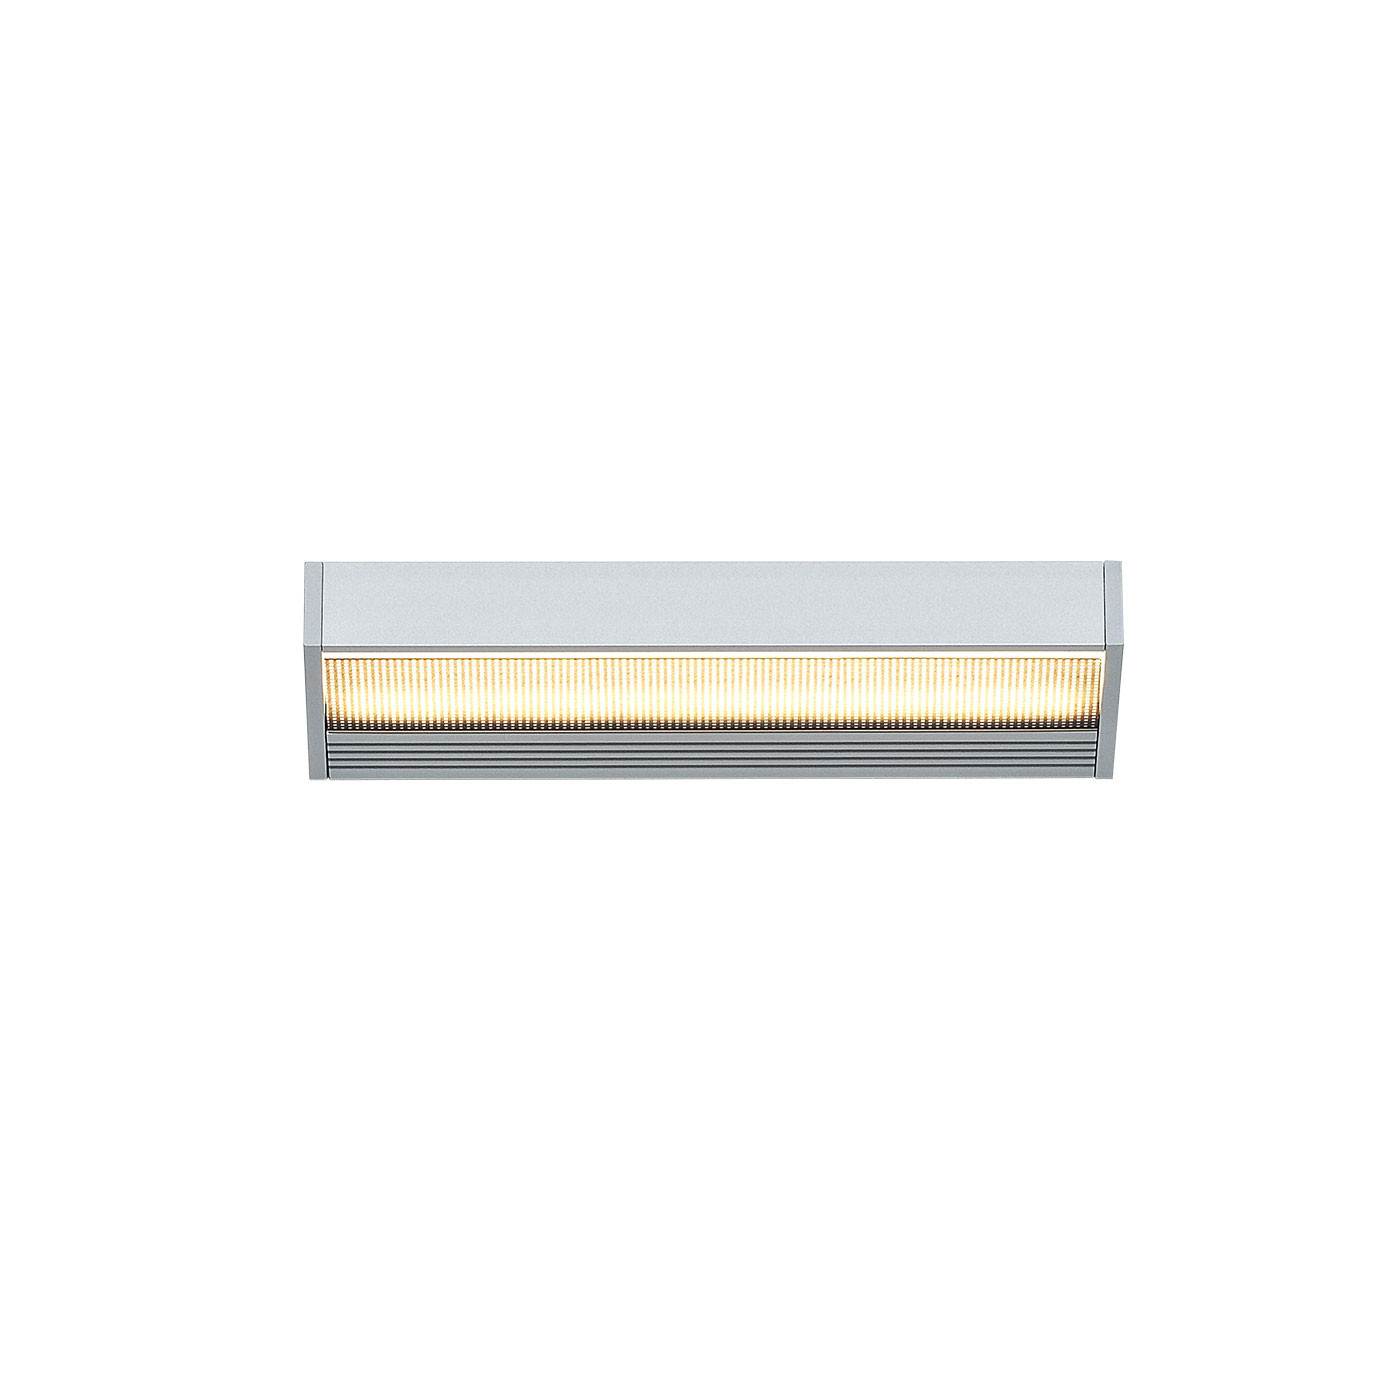 Serien Lighting SML² Wall 220, 3000K